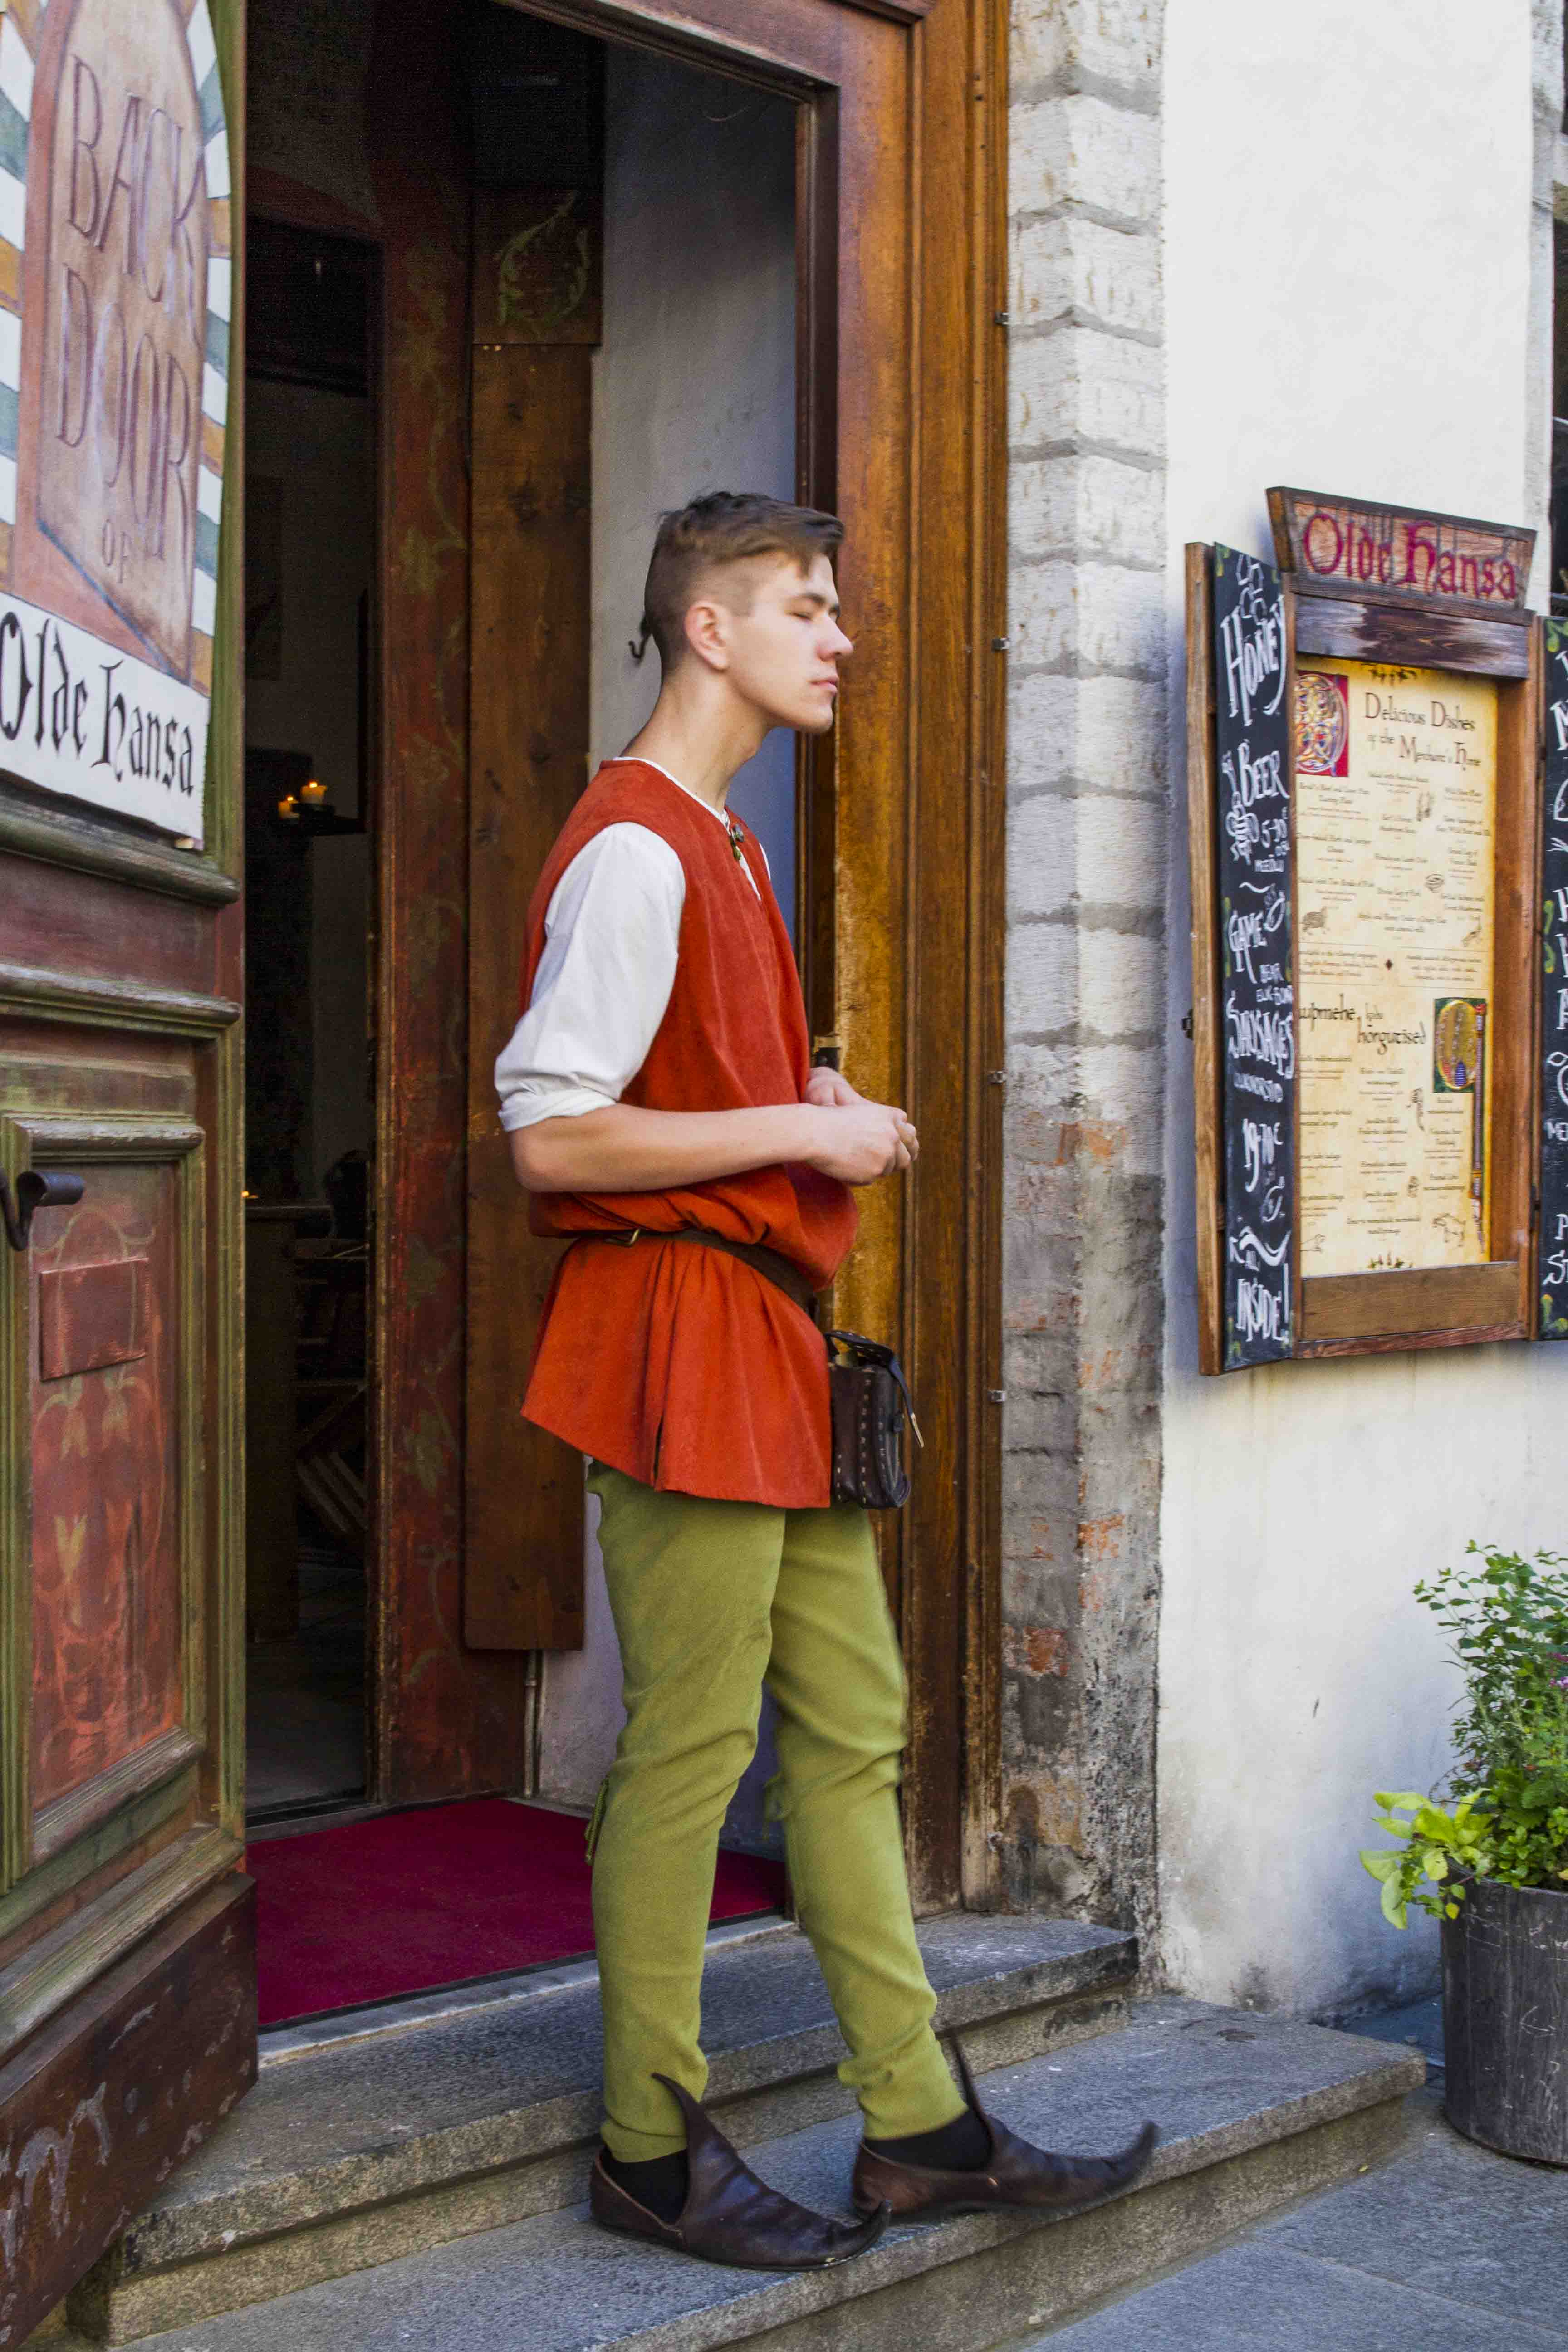 tallinn old town - a young man in medieval clothes